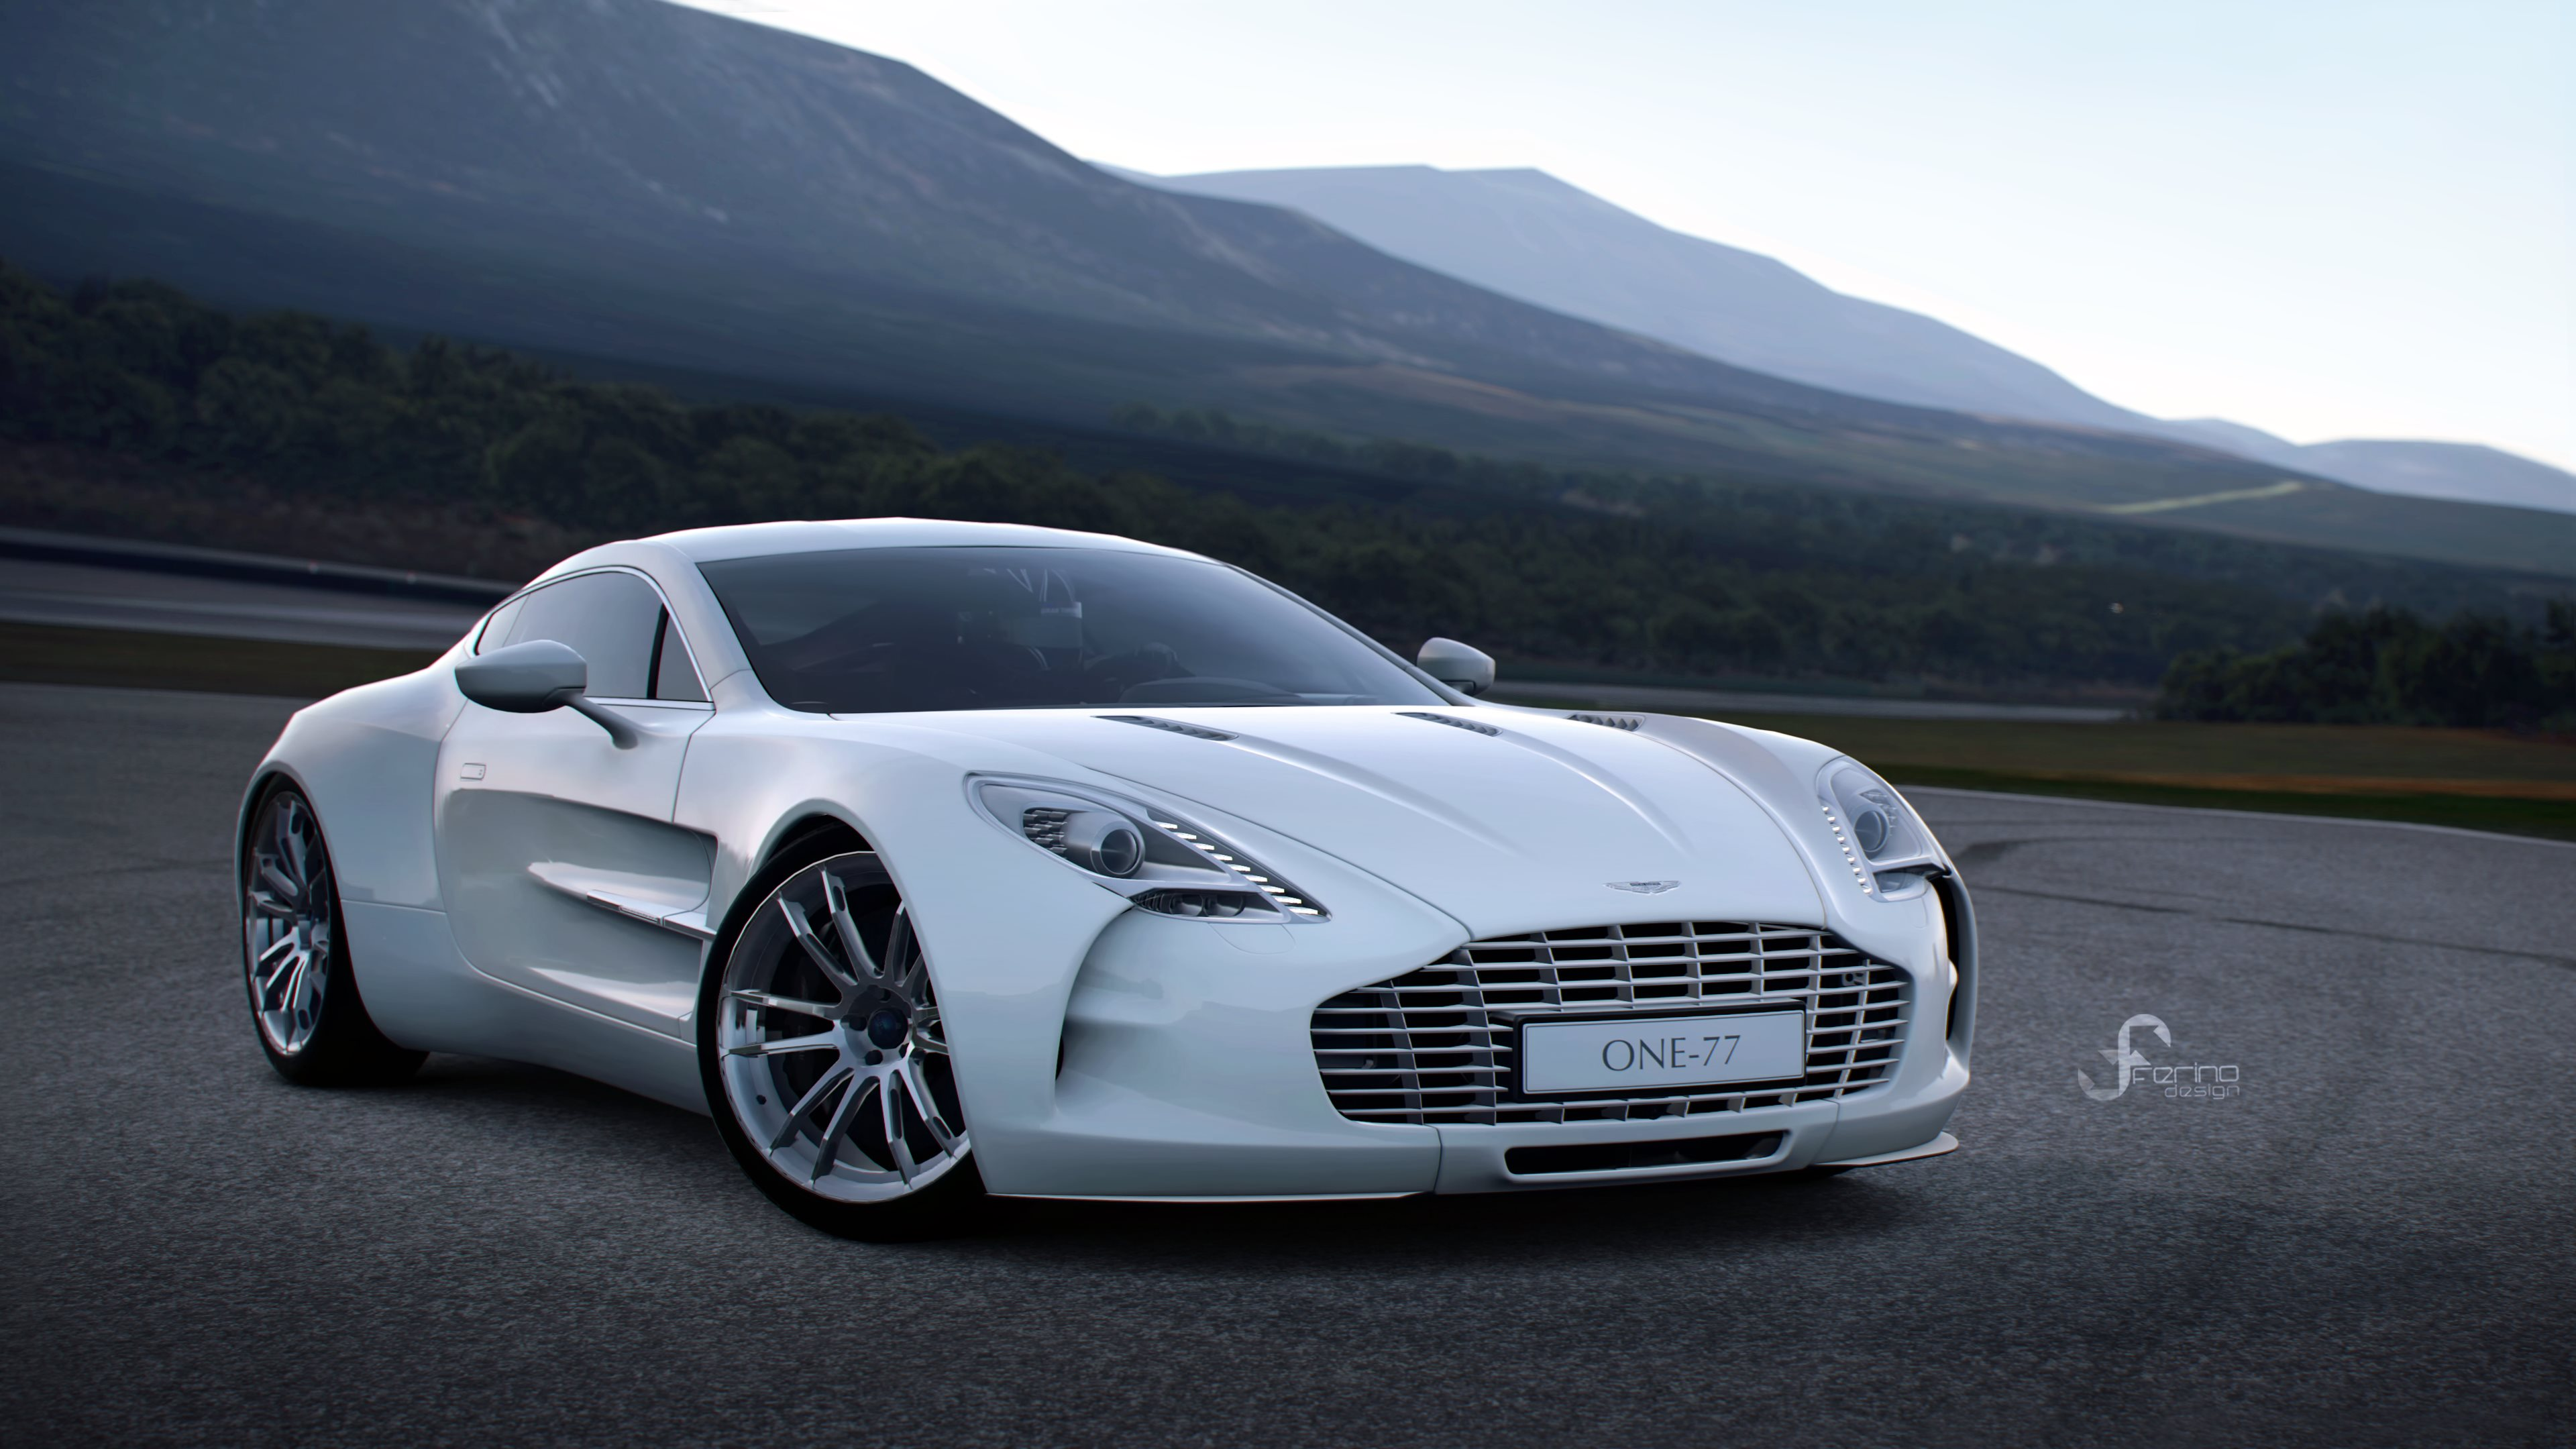 Aston Martin ONE 77 Wallpapers HD Wallpapers 3840x2160